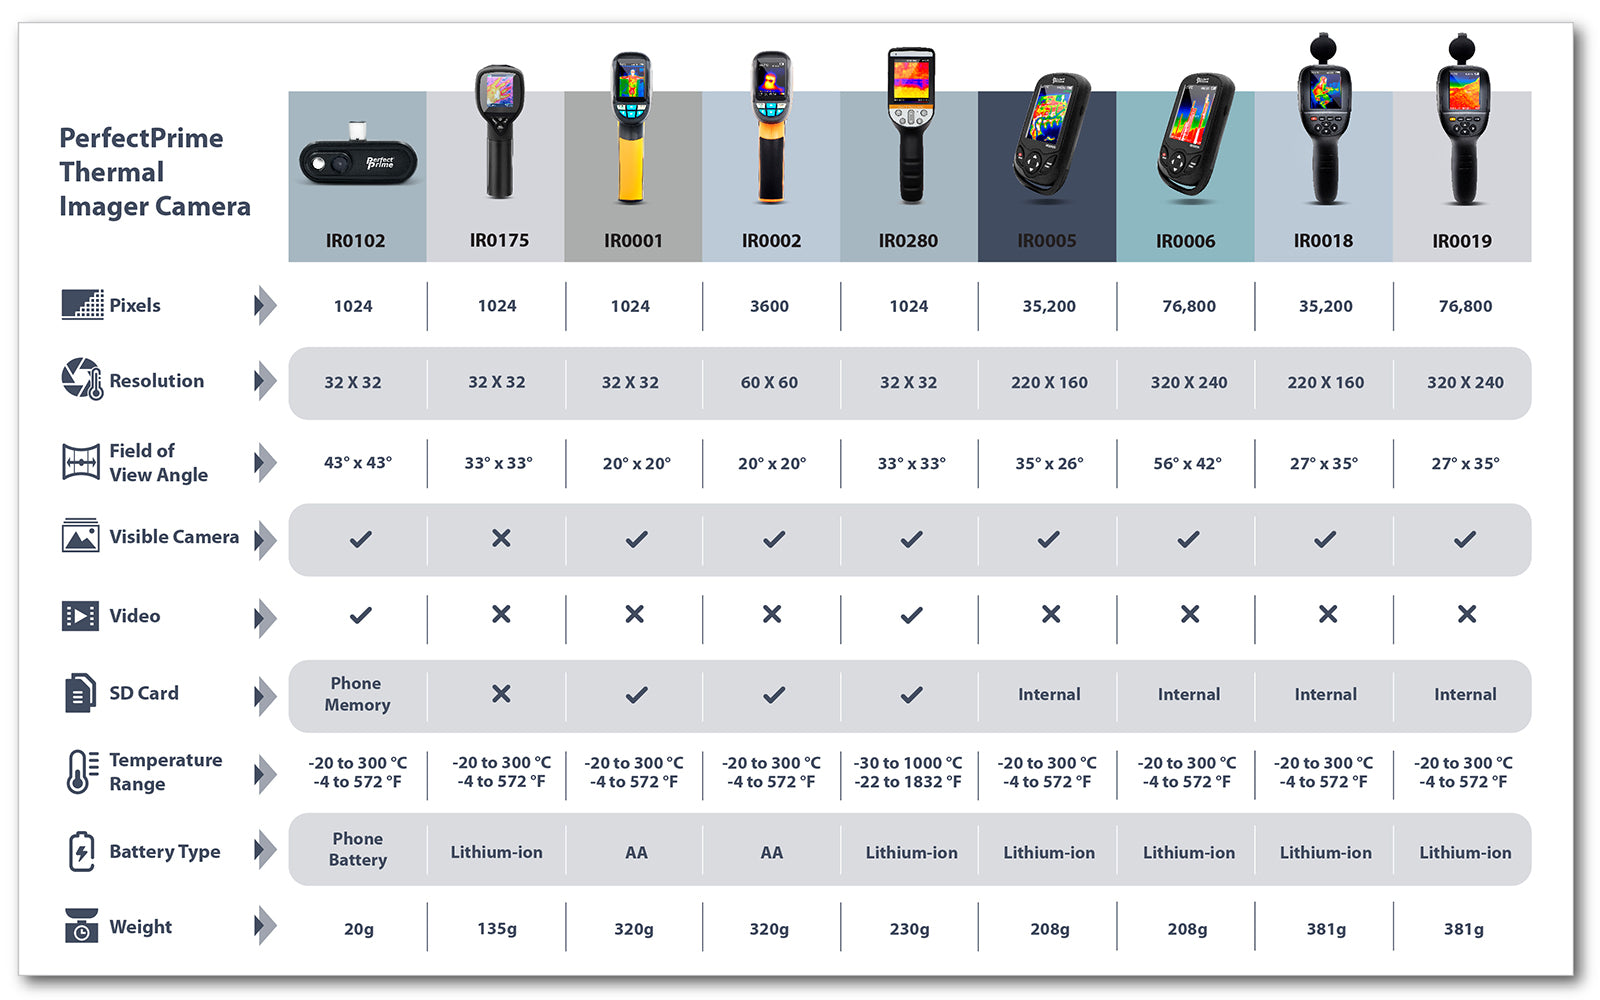 PerfectPrime Thermal Camera Comparison Chart